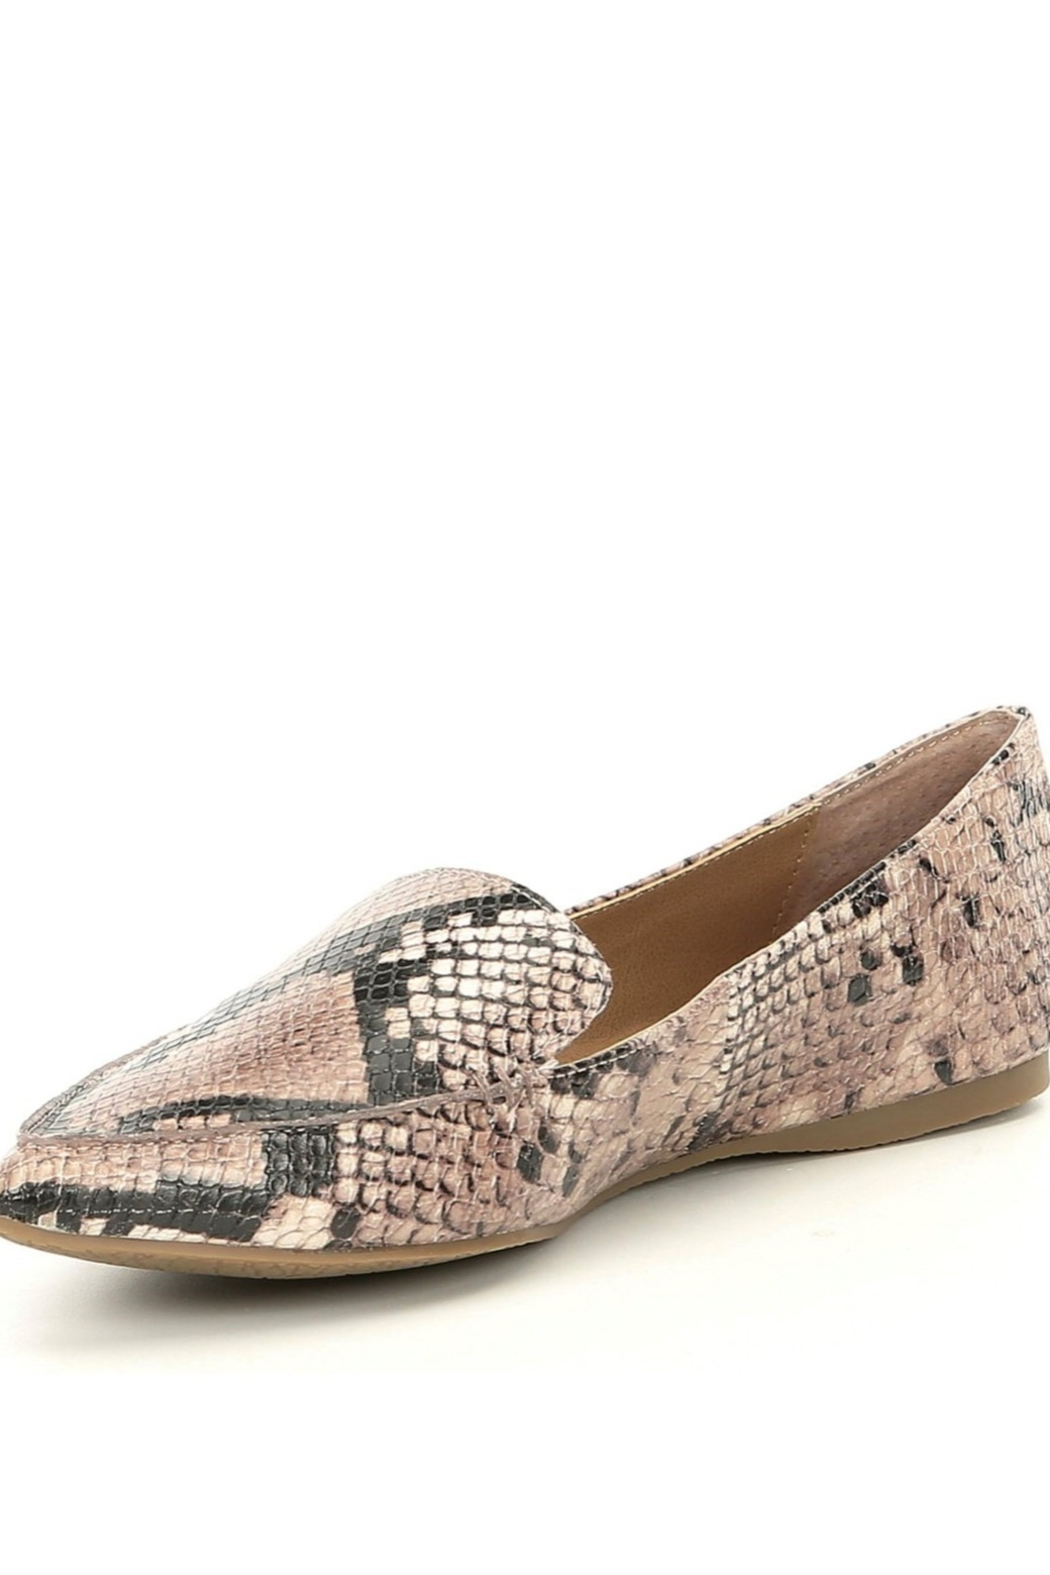 Steve Madden Feather Snake Flat - Front Cropped Image